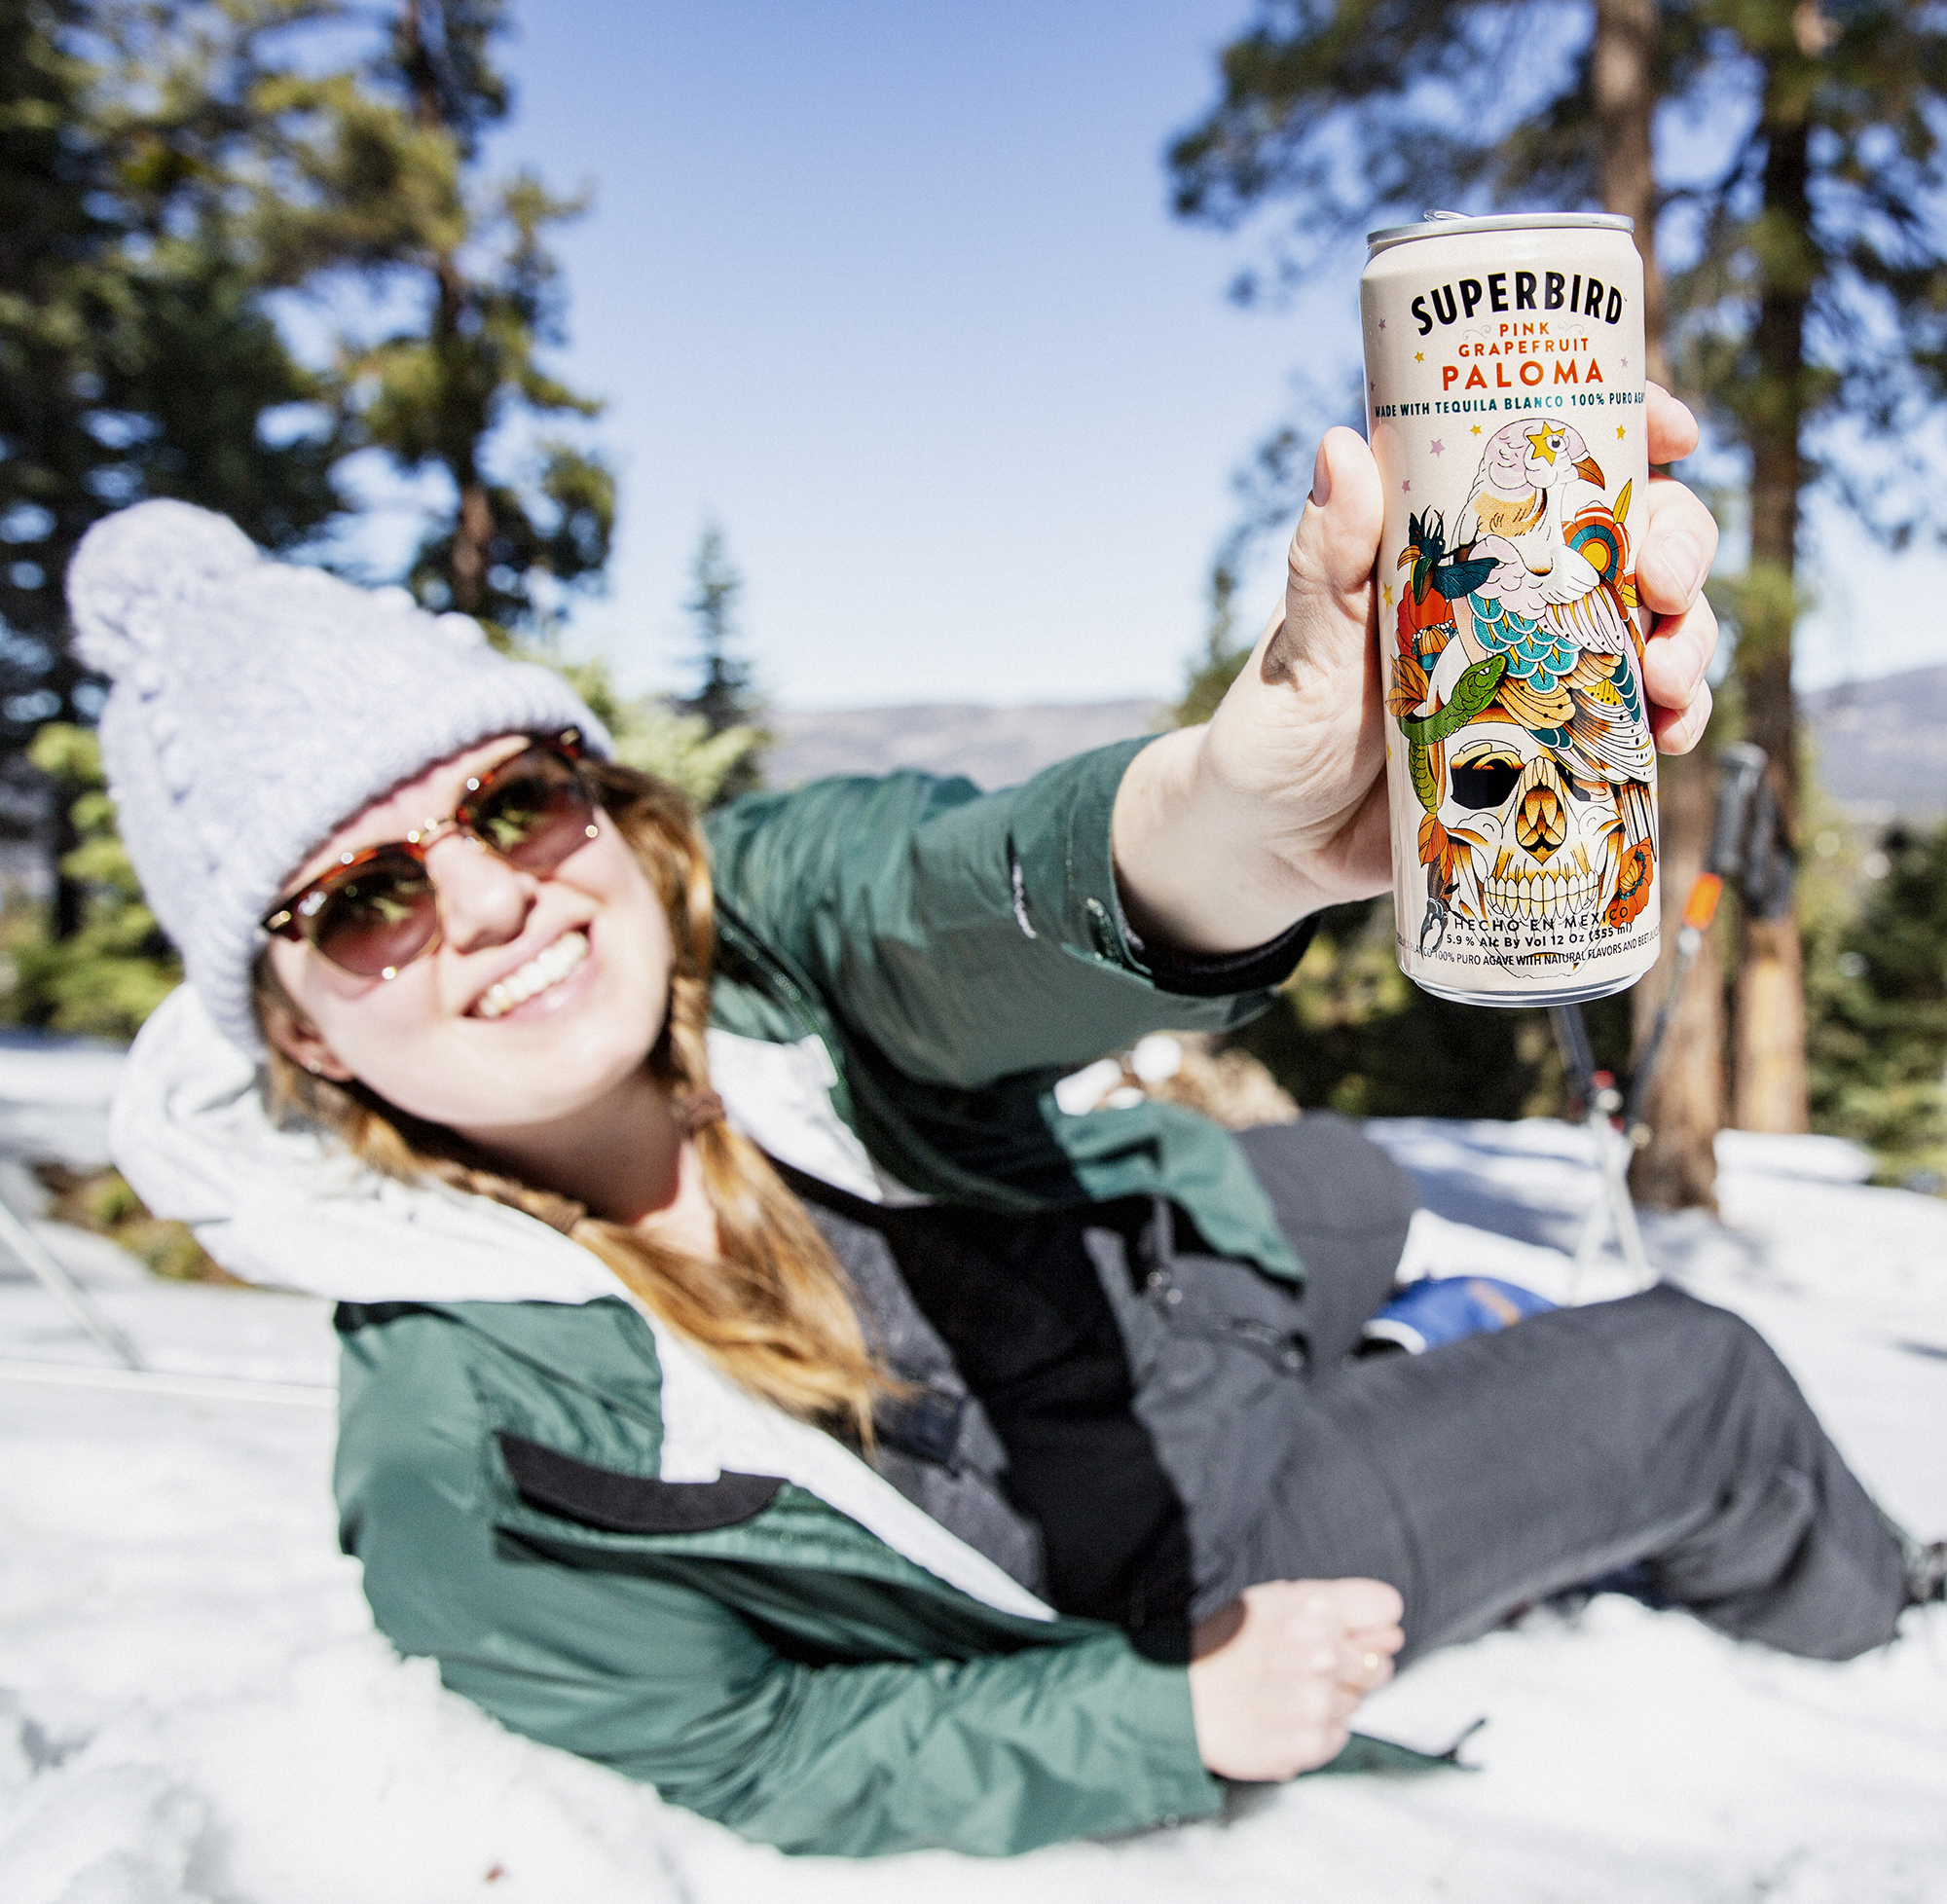 A snowboarder in full gear laying in the snow, showing a can of Superbird Paloma